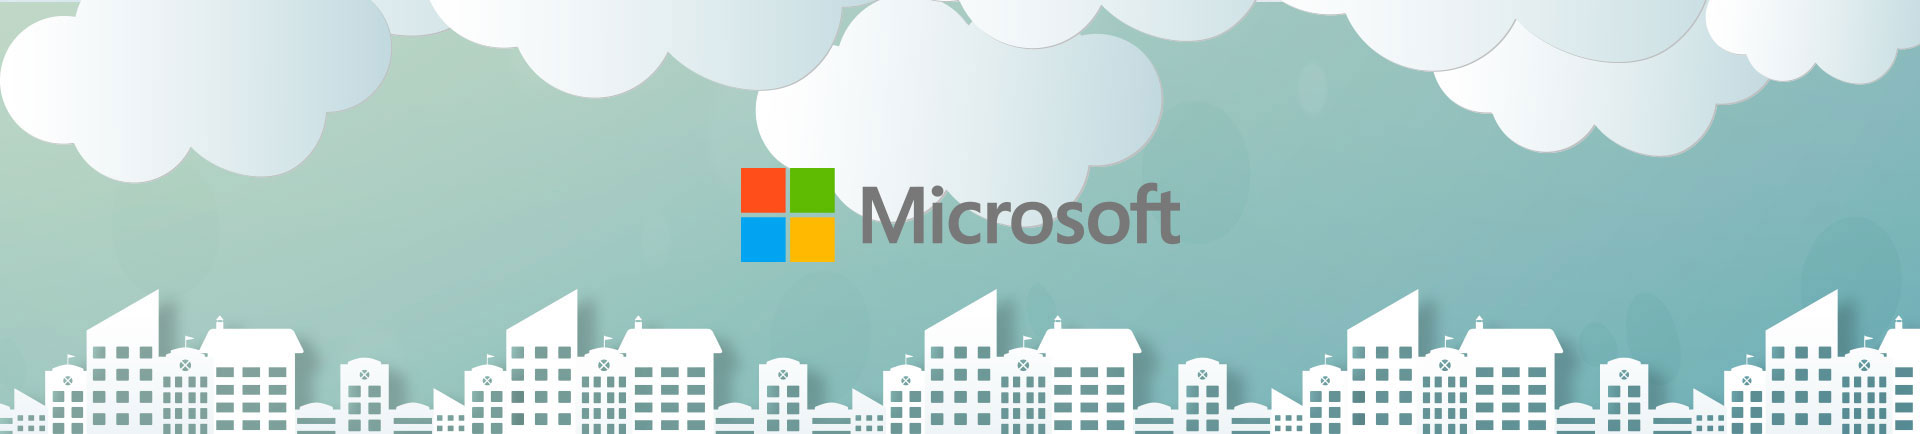 Microsoft Portals & Collaboration